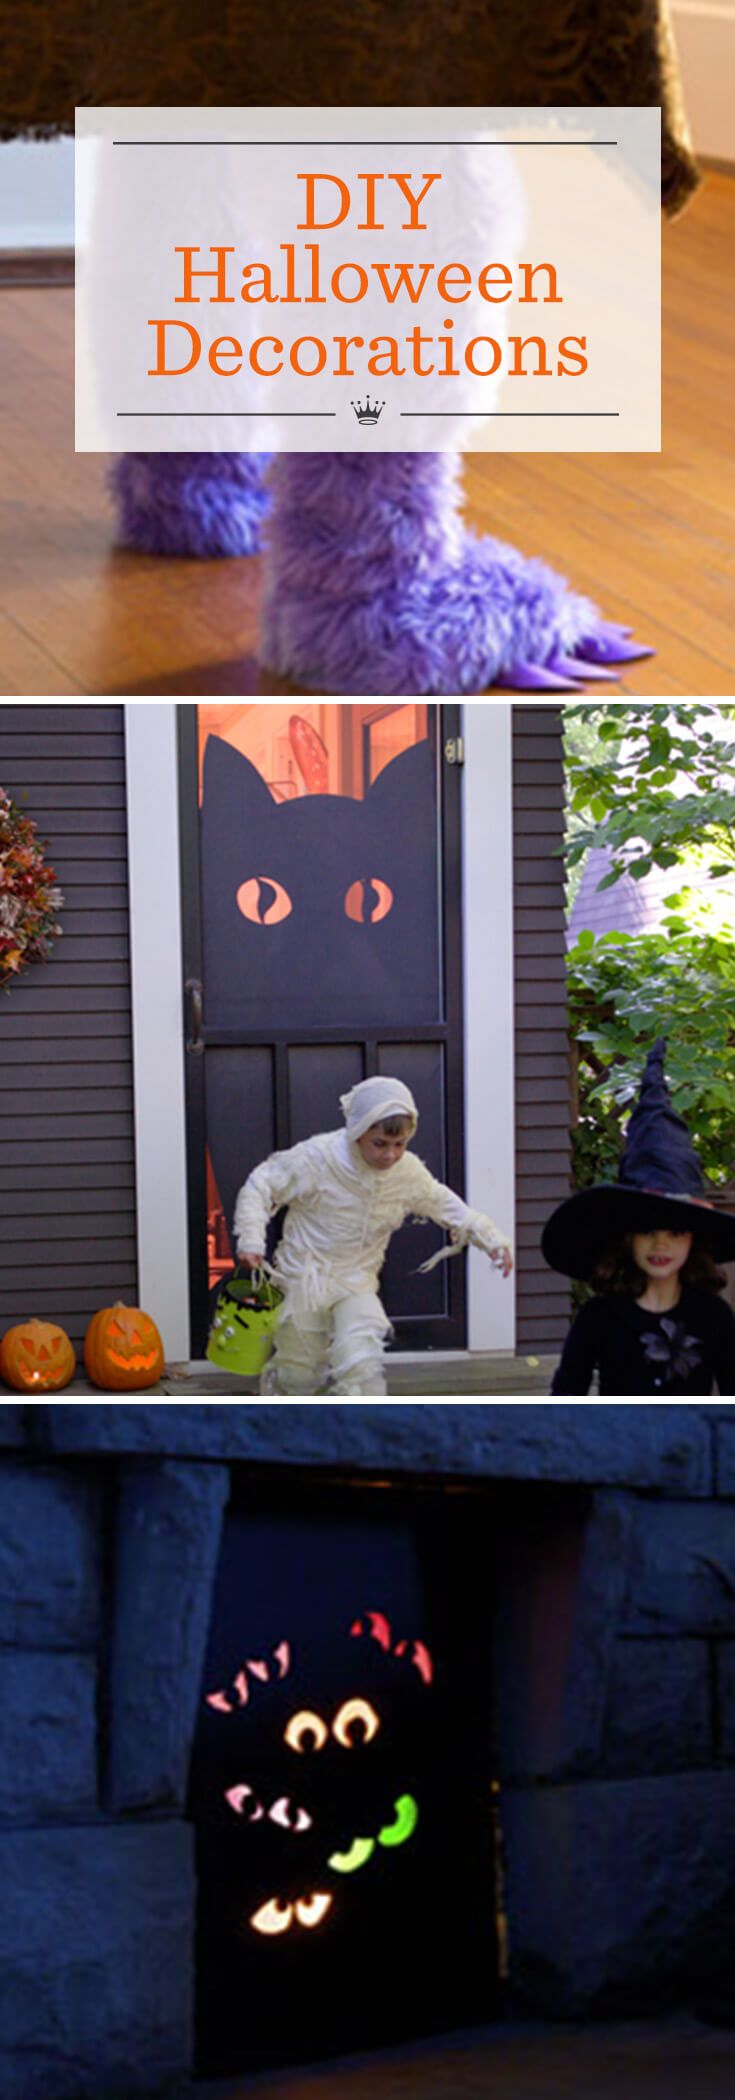 Trick out your house with these DIY Halloween decorations DIY - halloween decorations diy